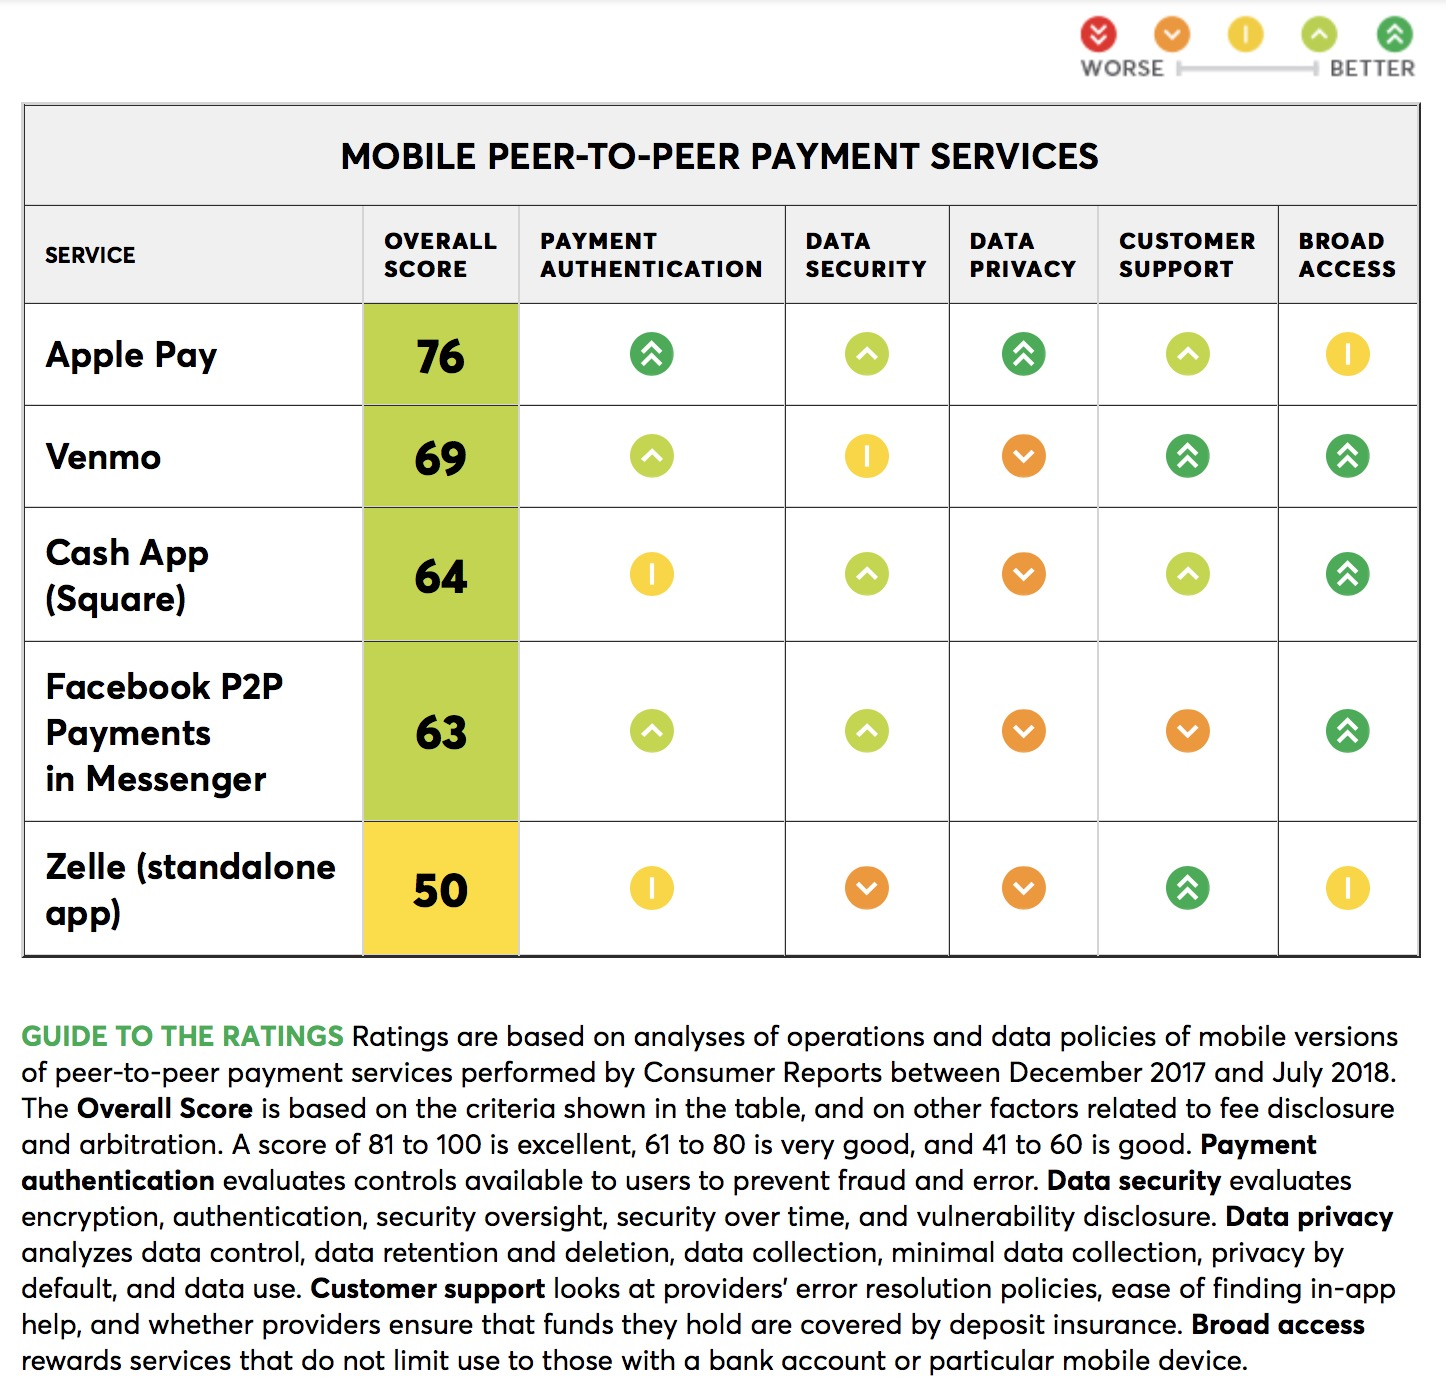 https://www.consumerreports.org/digital-payments/mobile-p2p-payment-services-review/